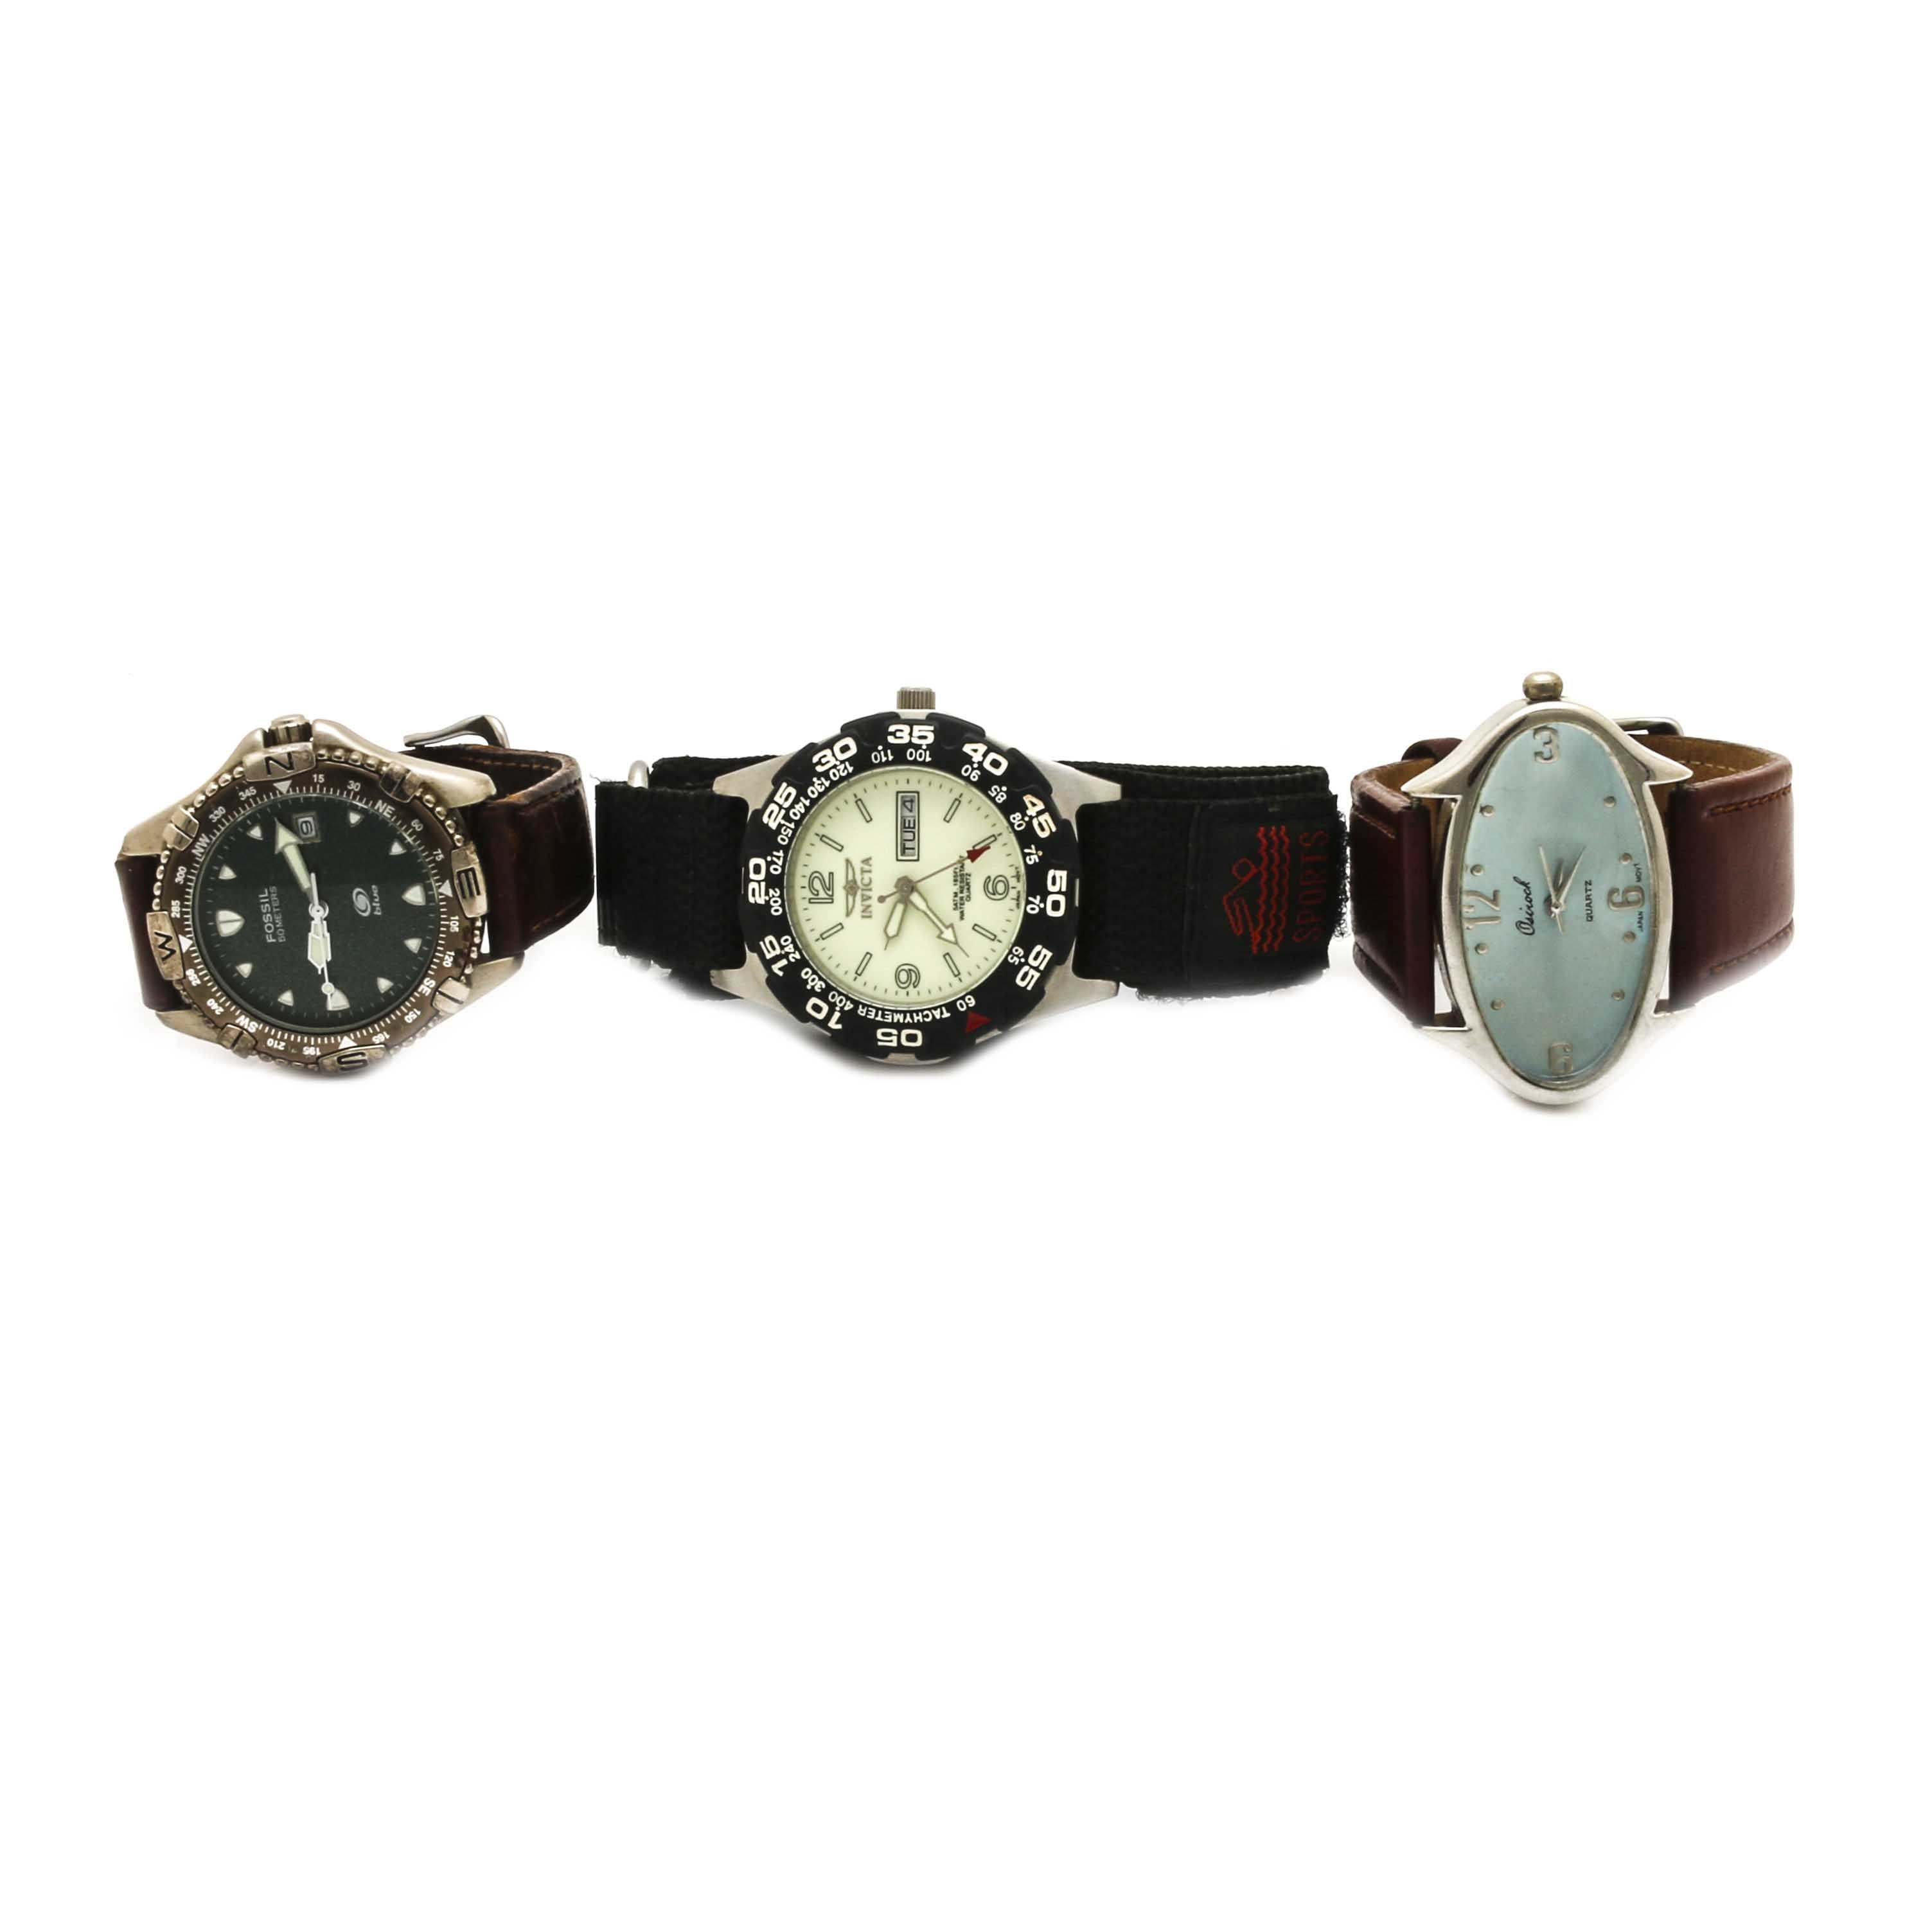 Wristwatch Selection Including Invicta, Fossil, and Osirock